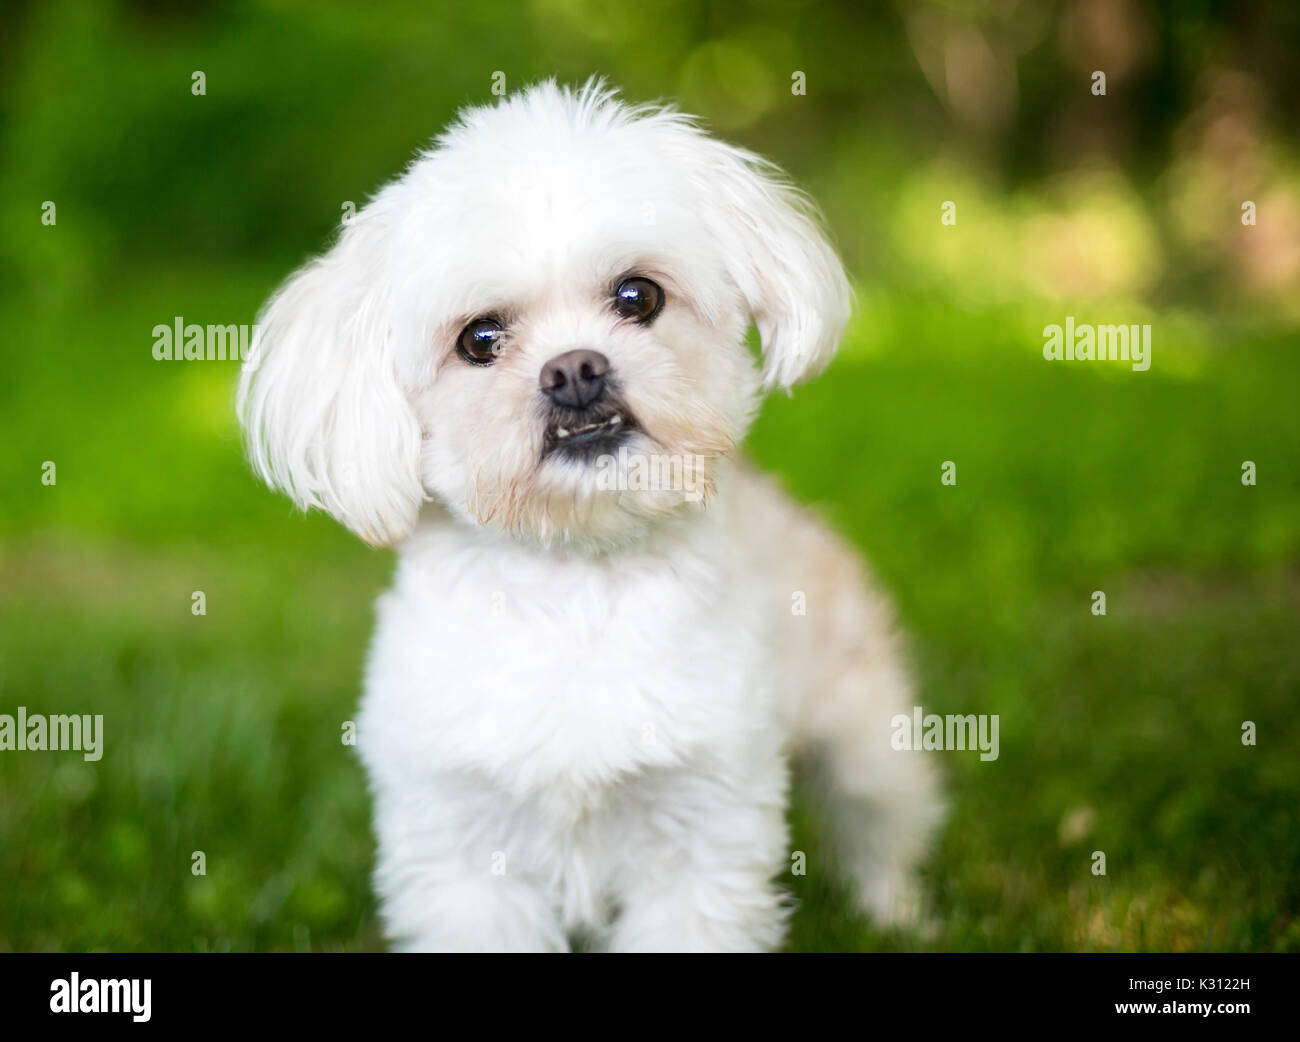 Poodle bichon stock photos poodle bichon stock images for Fluffy little dog breeds